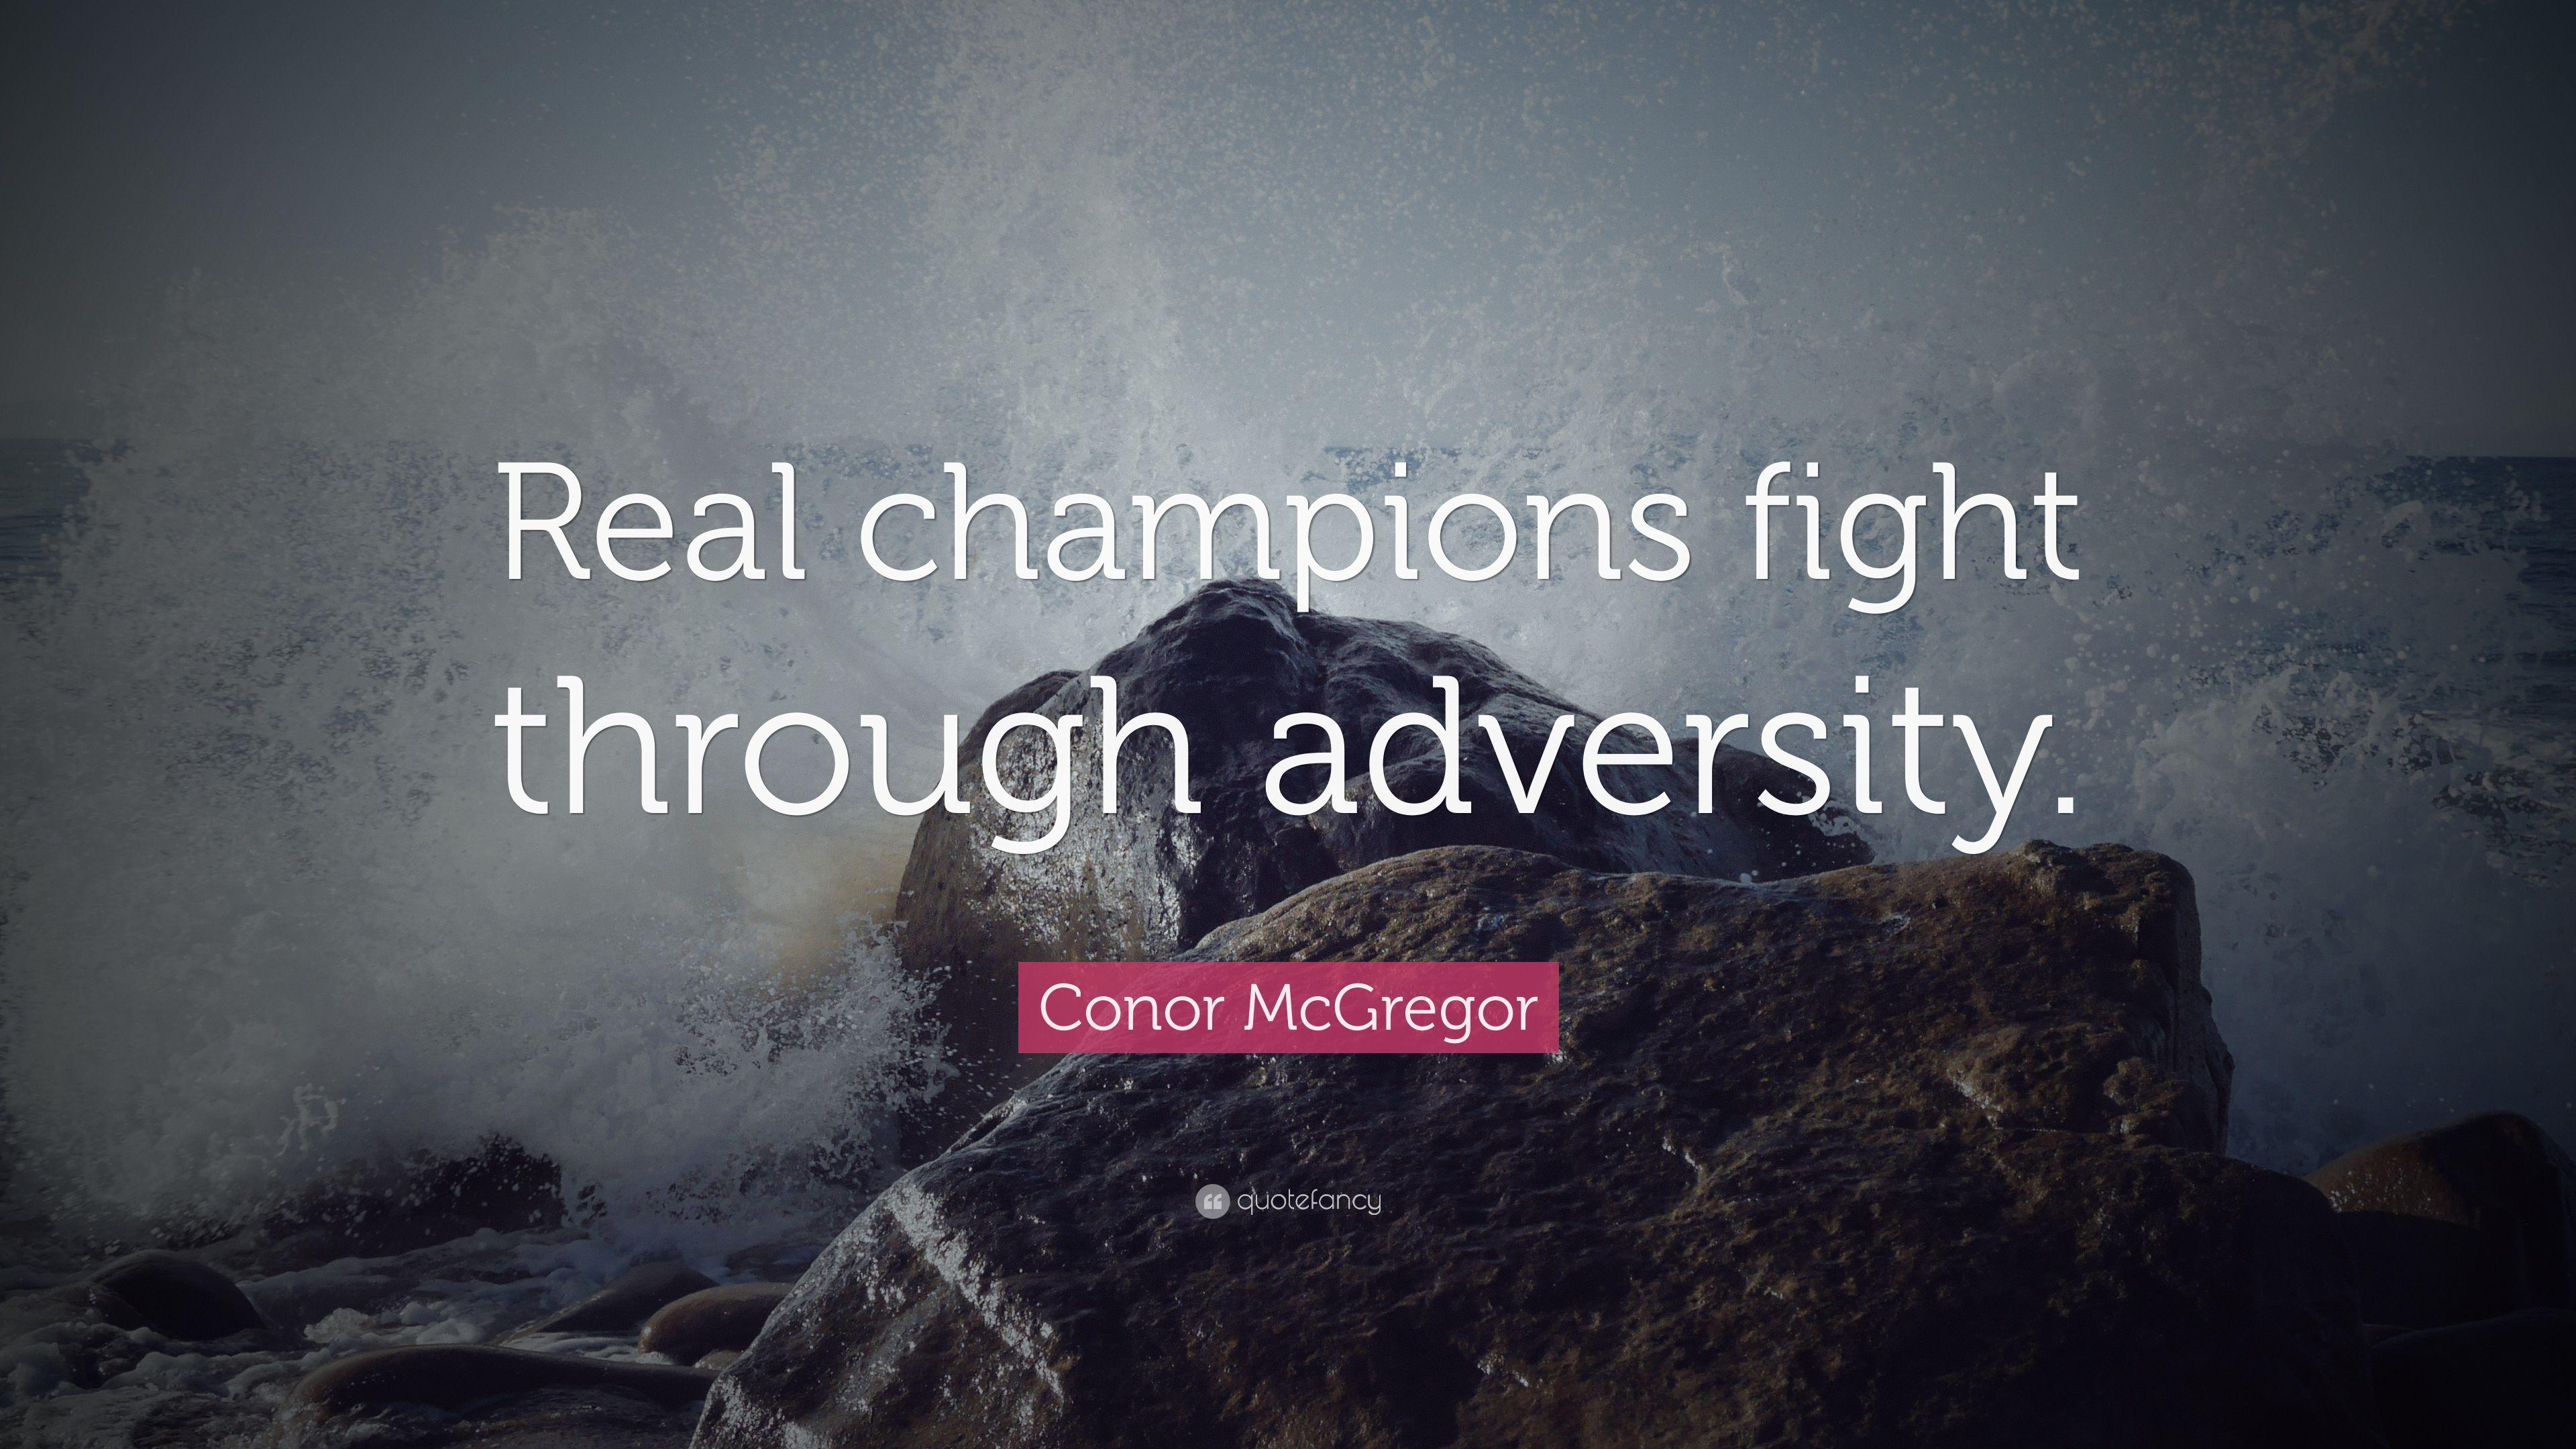 Conor McGregor Quotes (64 wallpapers) - Quotefancy